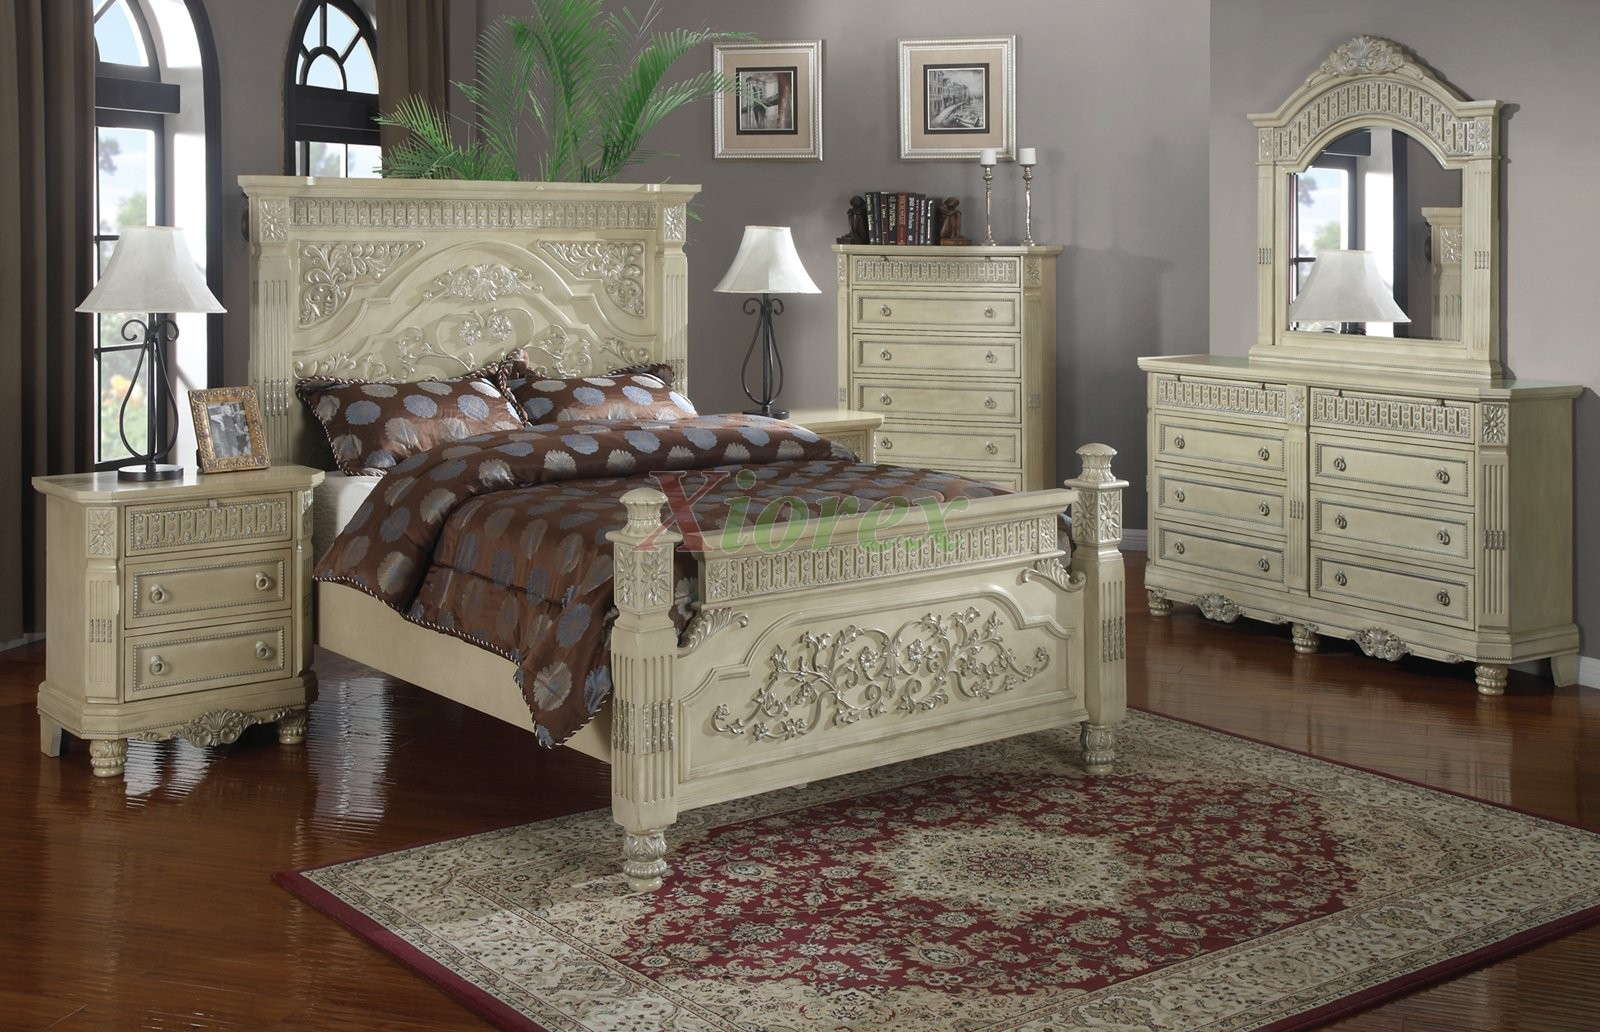 White Luxury Bedroom Furniture Sets With Tall Headboard Beds